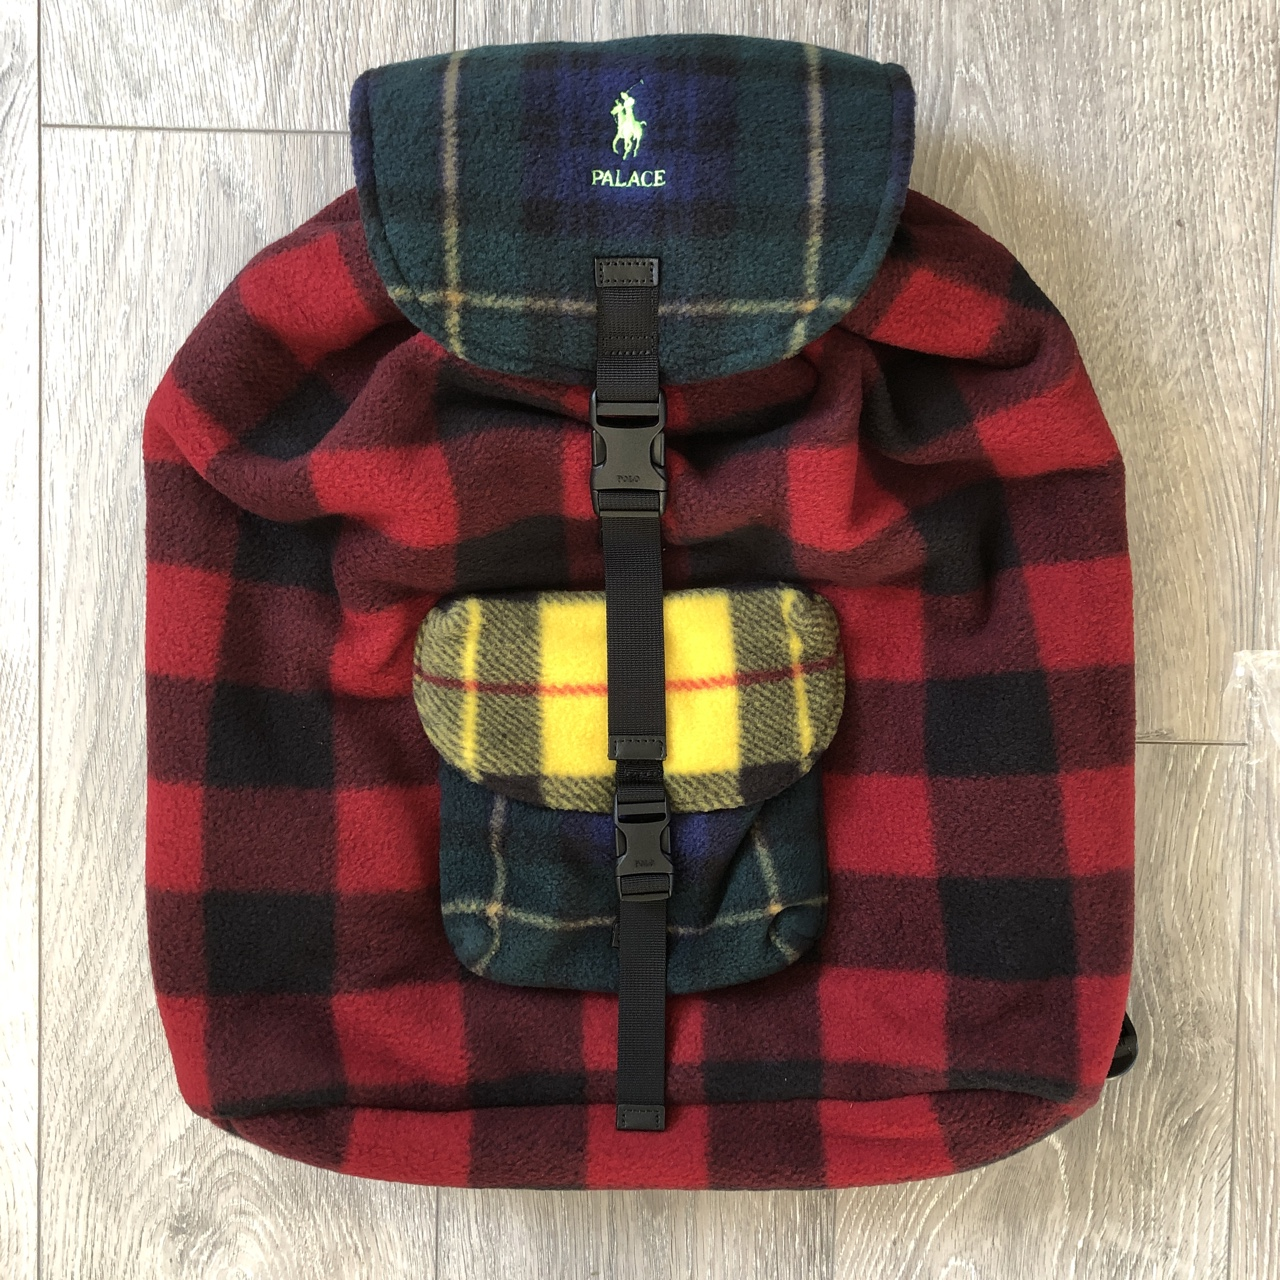 Glen X Backpack Plaid Fleece Palace Lauren Ralph Depop erxoQdCWB